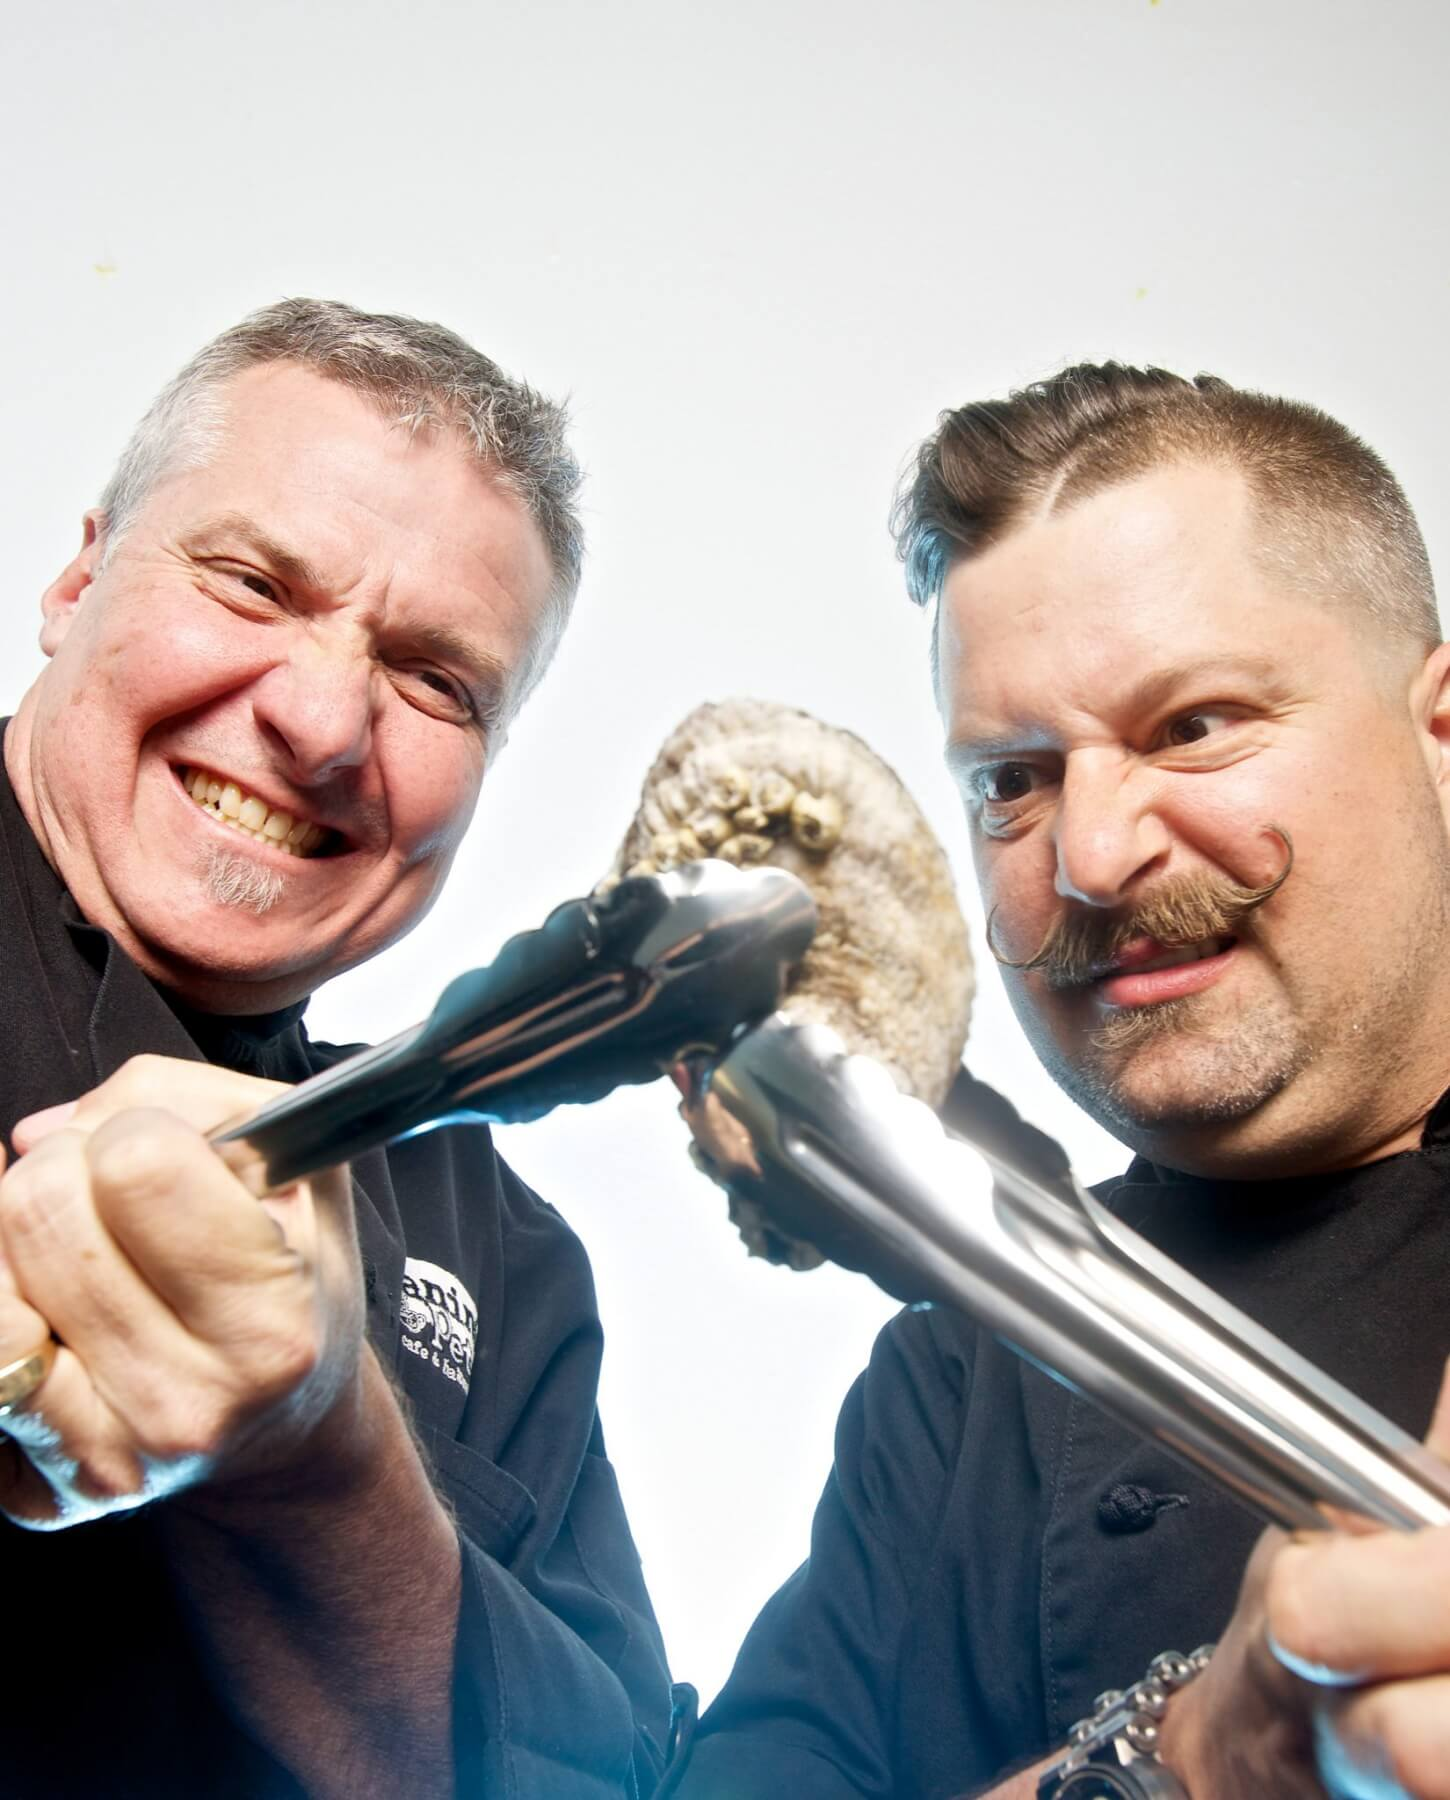 COVER STORY: 2014 Hangout Oyster Cook-Off & Craft Beer Weekend Guide